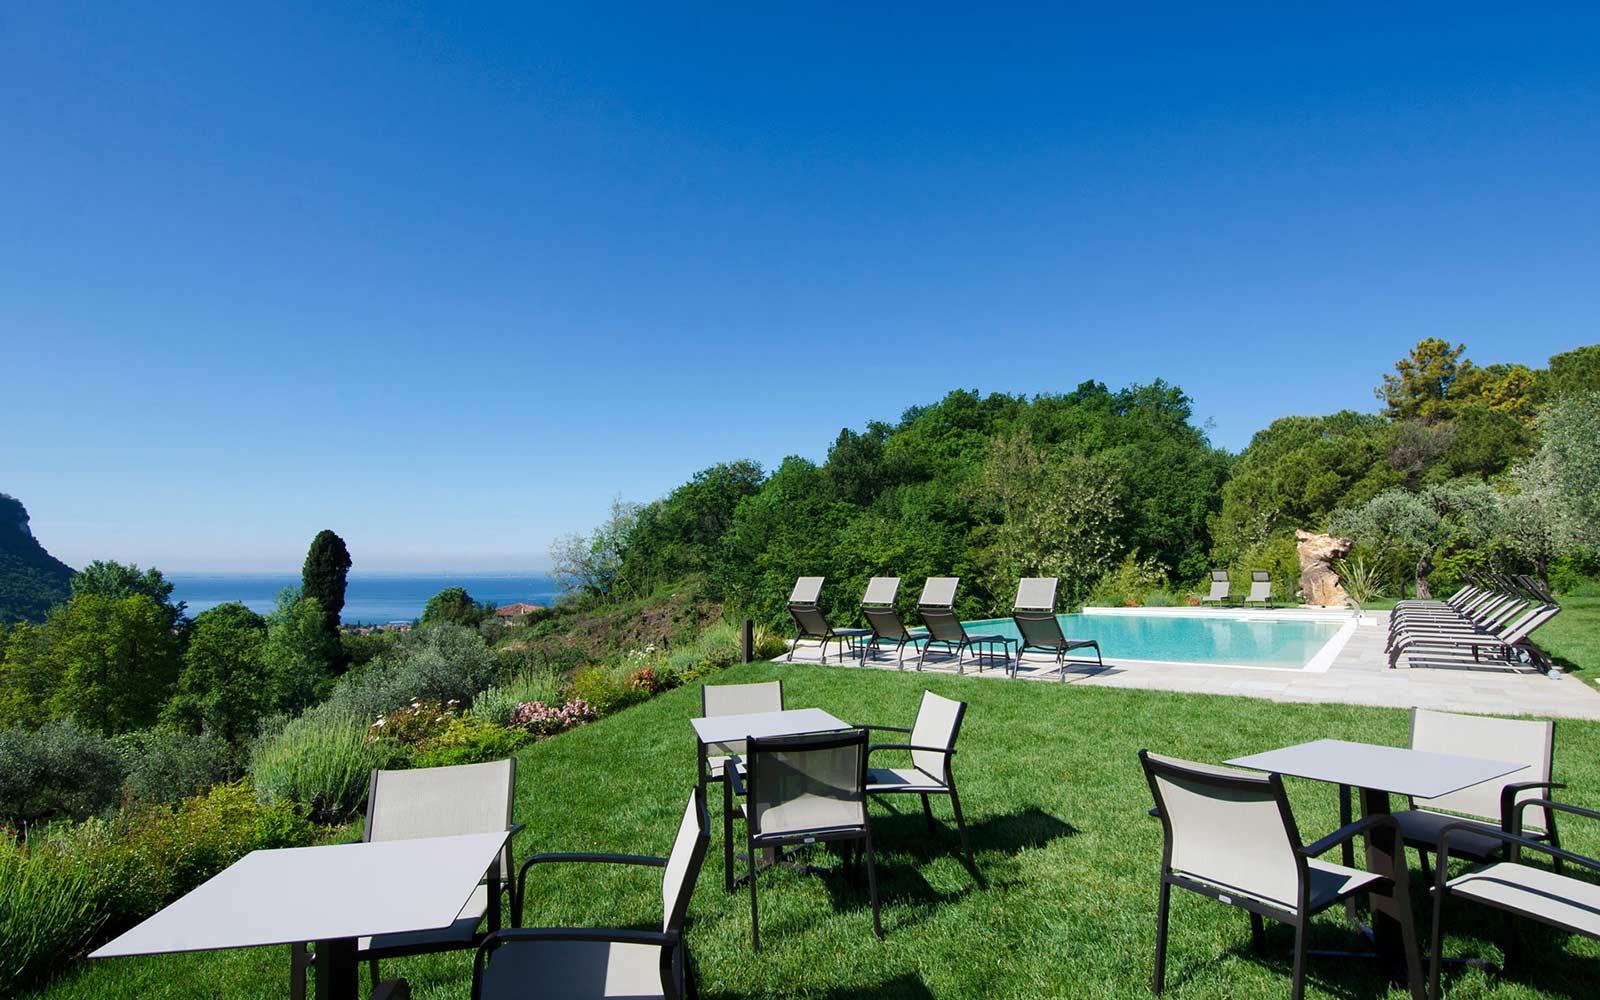 PISCINA<br>CA' BARBINI RESORT - GARDA